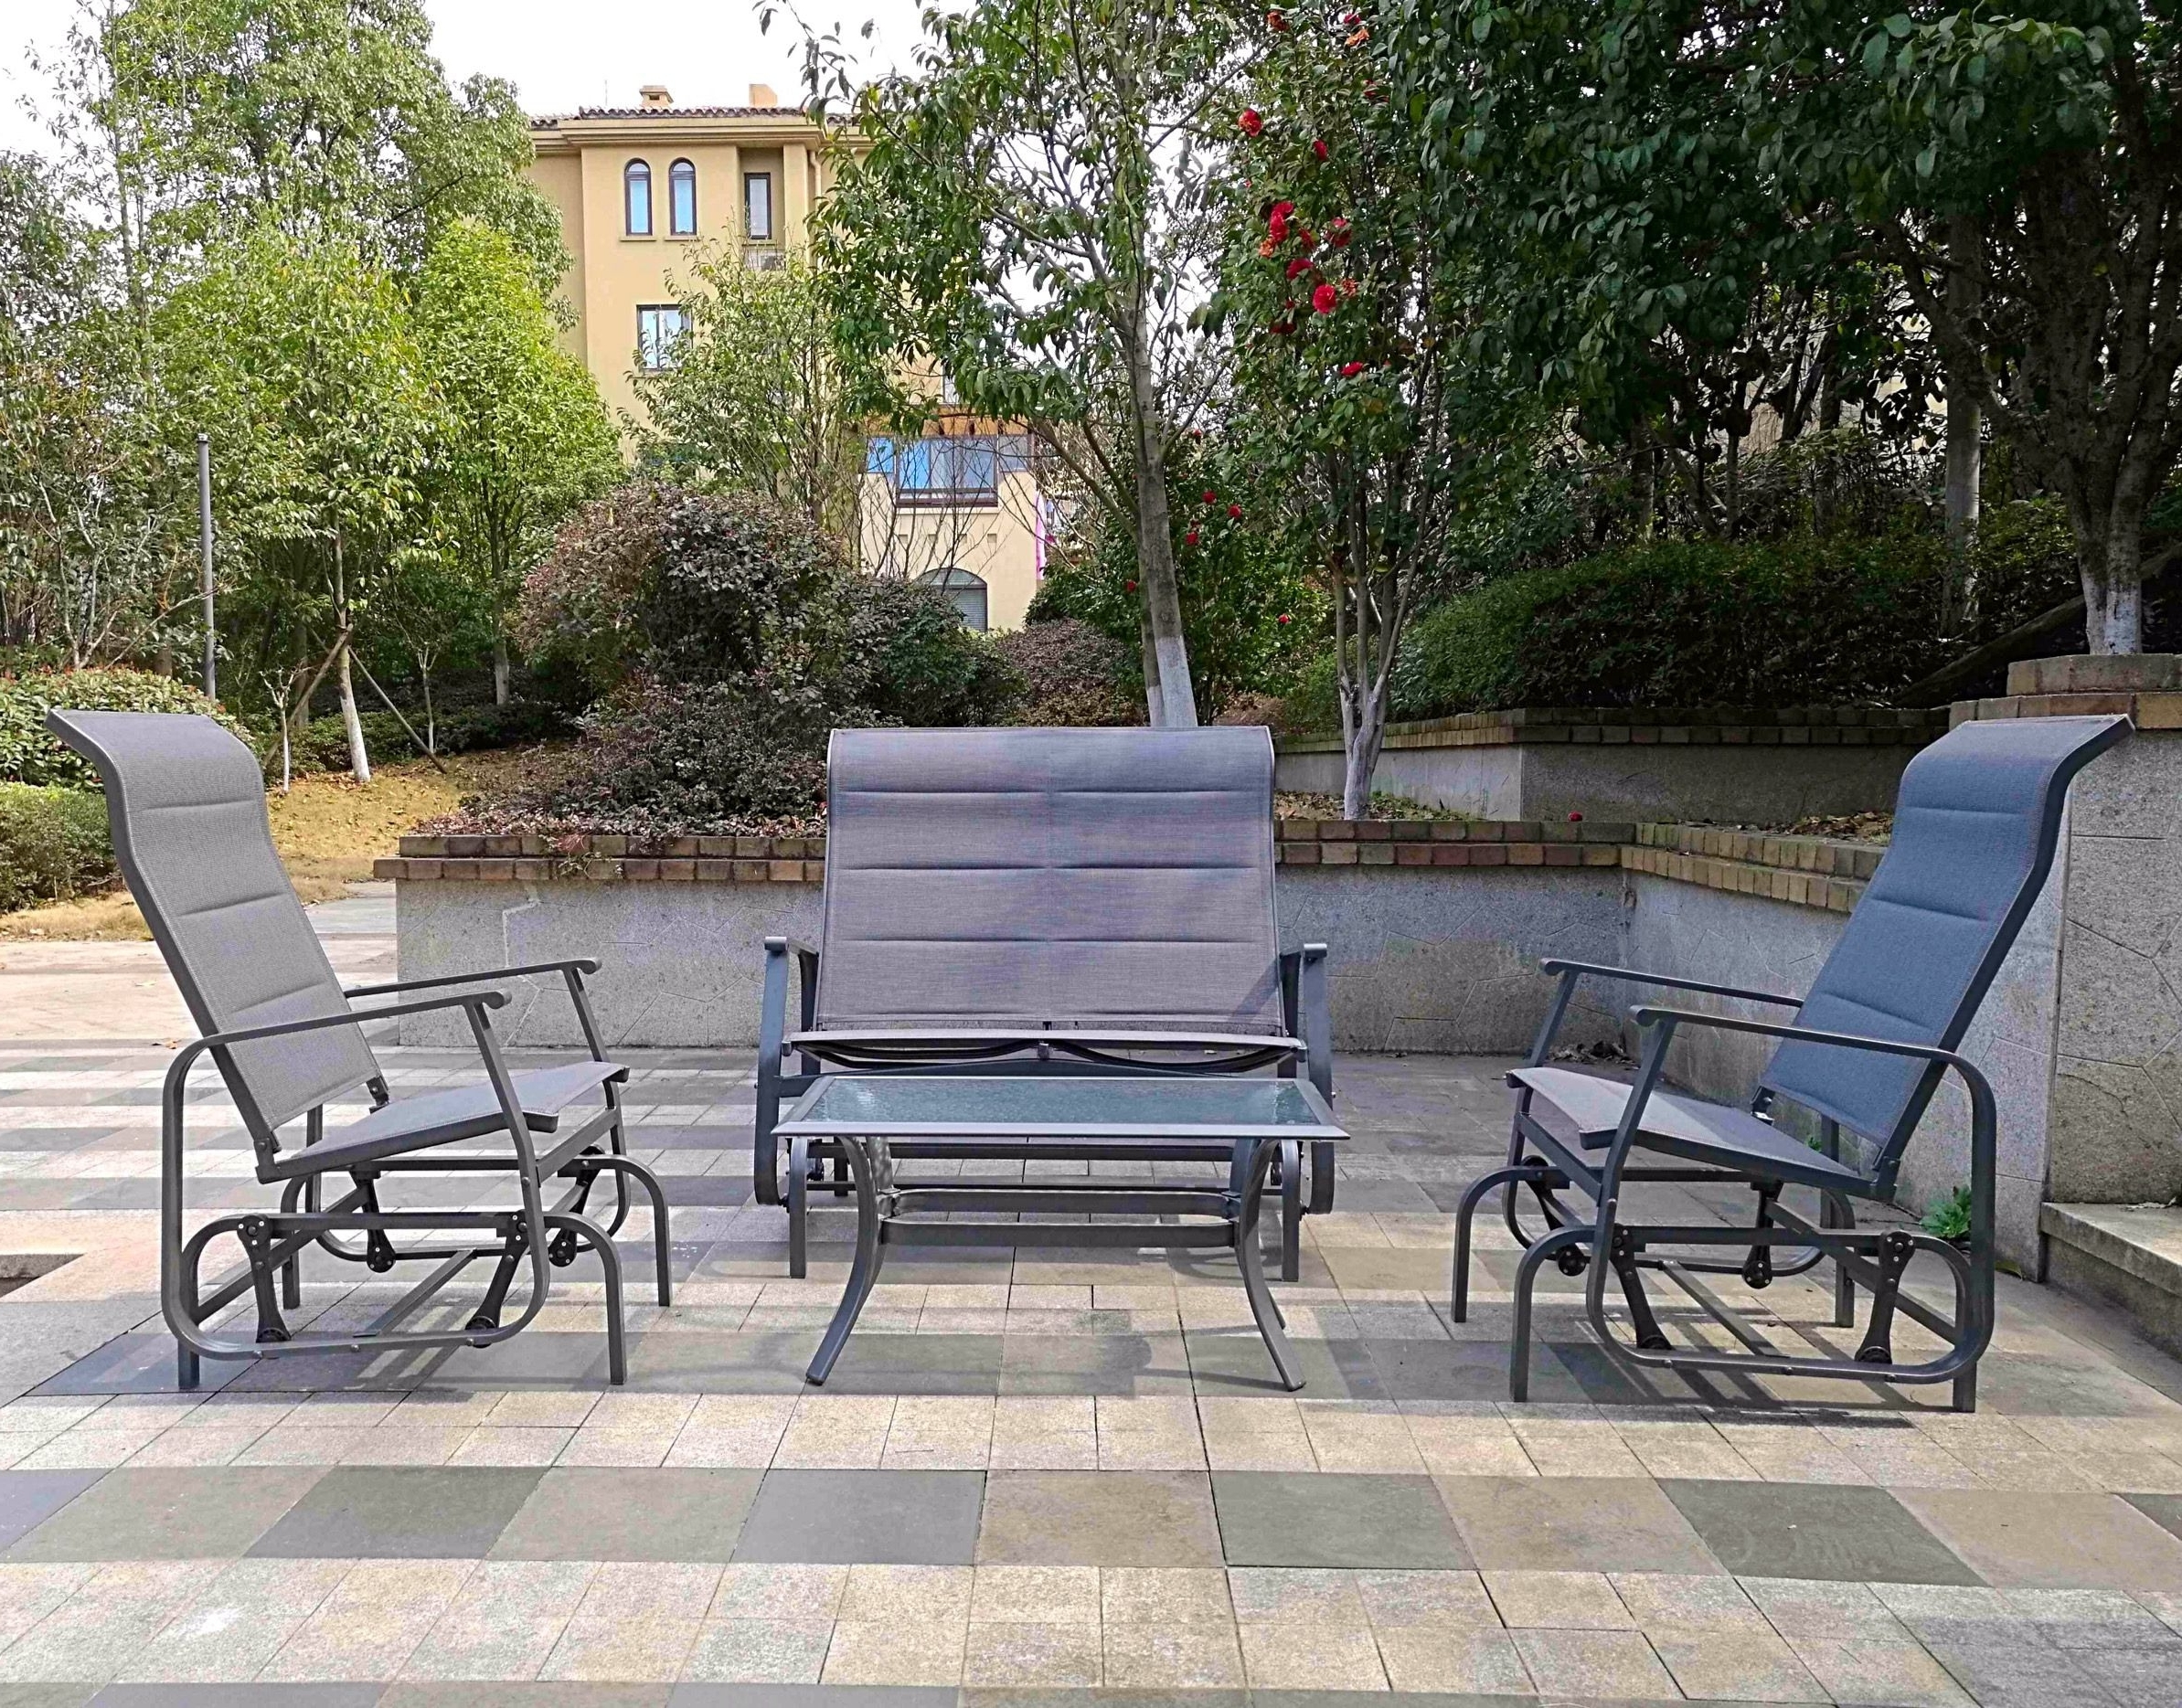 Patio Conversation Sets With Glider Pertaining To Current Conversation Sets Patio – Lovely 4Pc Outdoor Glider Conversation (View 11 of 15)